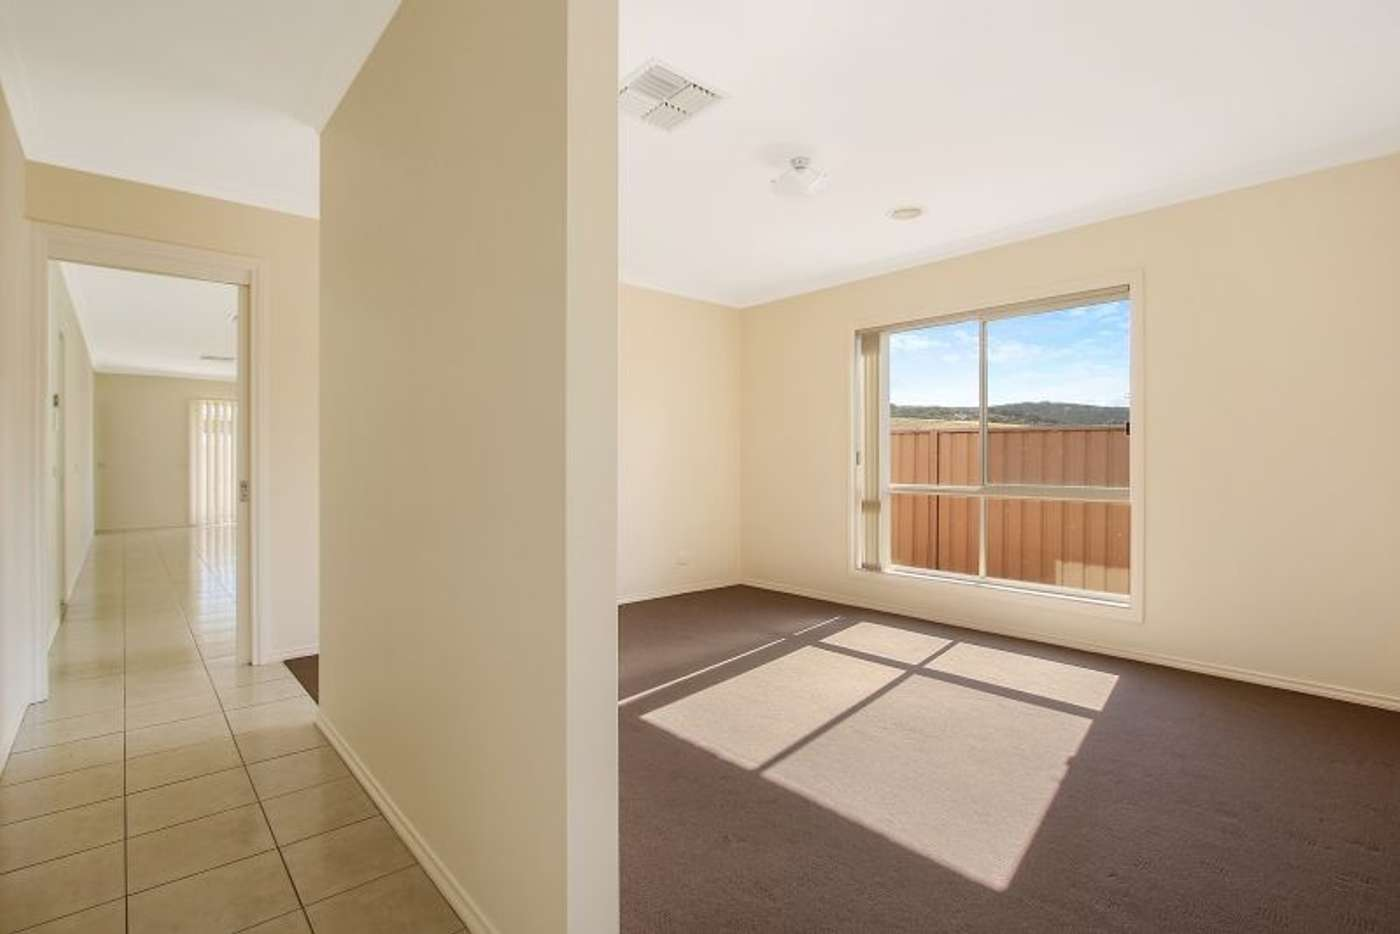 Sixth view of Homely house listing, 819 Centaur Road, Hamilton Valley NSW 2641